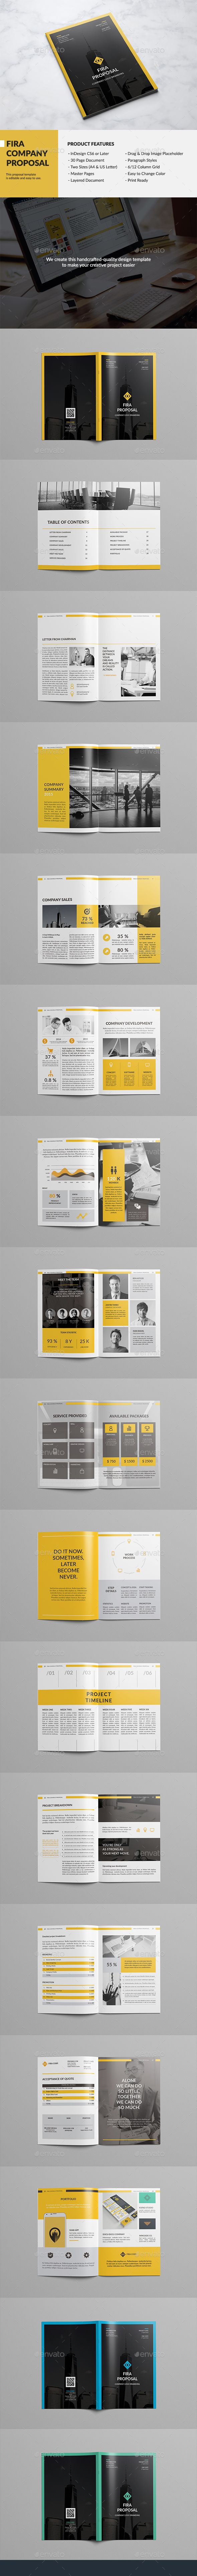 Fira Company Proposal Template InDesign INDD. Download here: http://graphicriver.net/item/fira-company-proposal/15706253?ref=ksioks